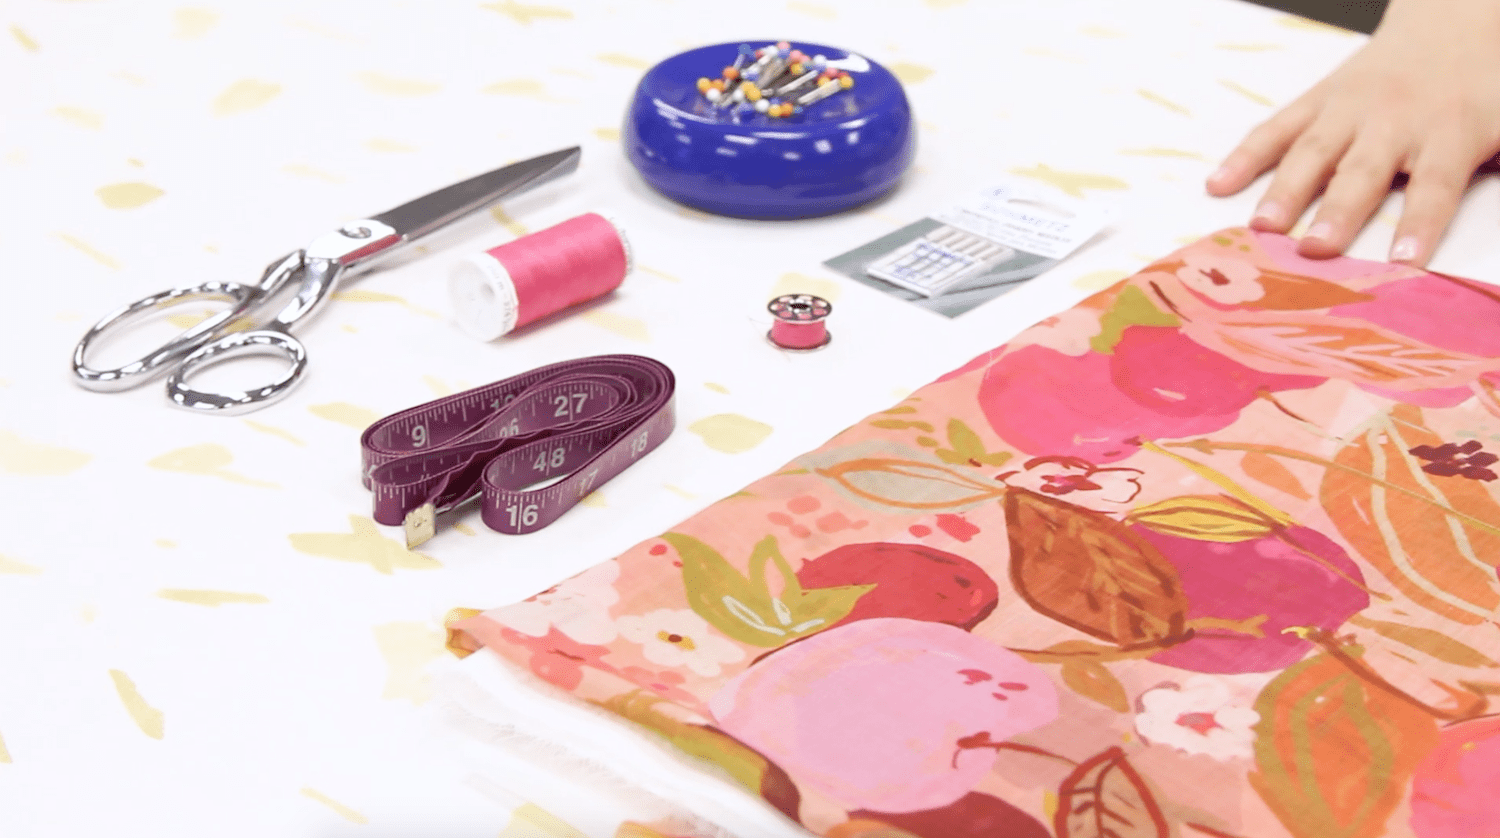 Here's what you'll need to make your Chiffon scarf | Spoonflower Blog